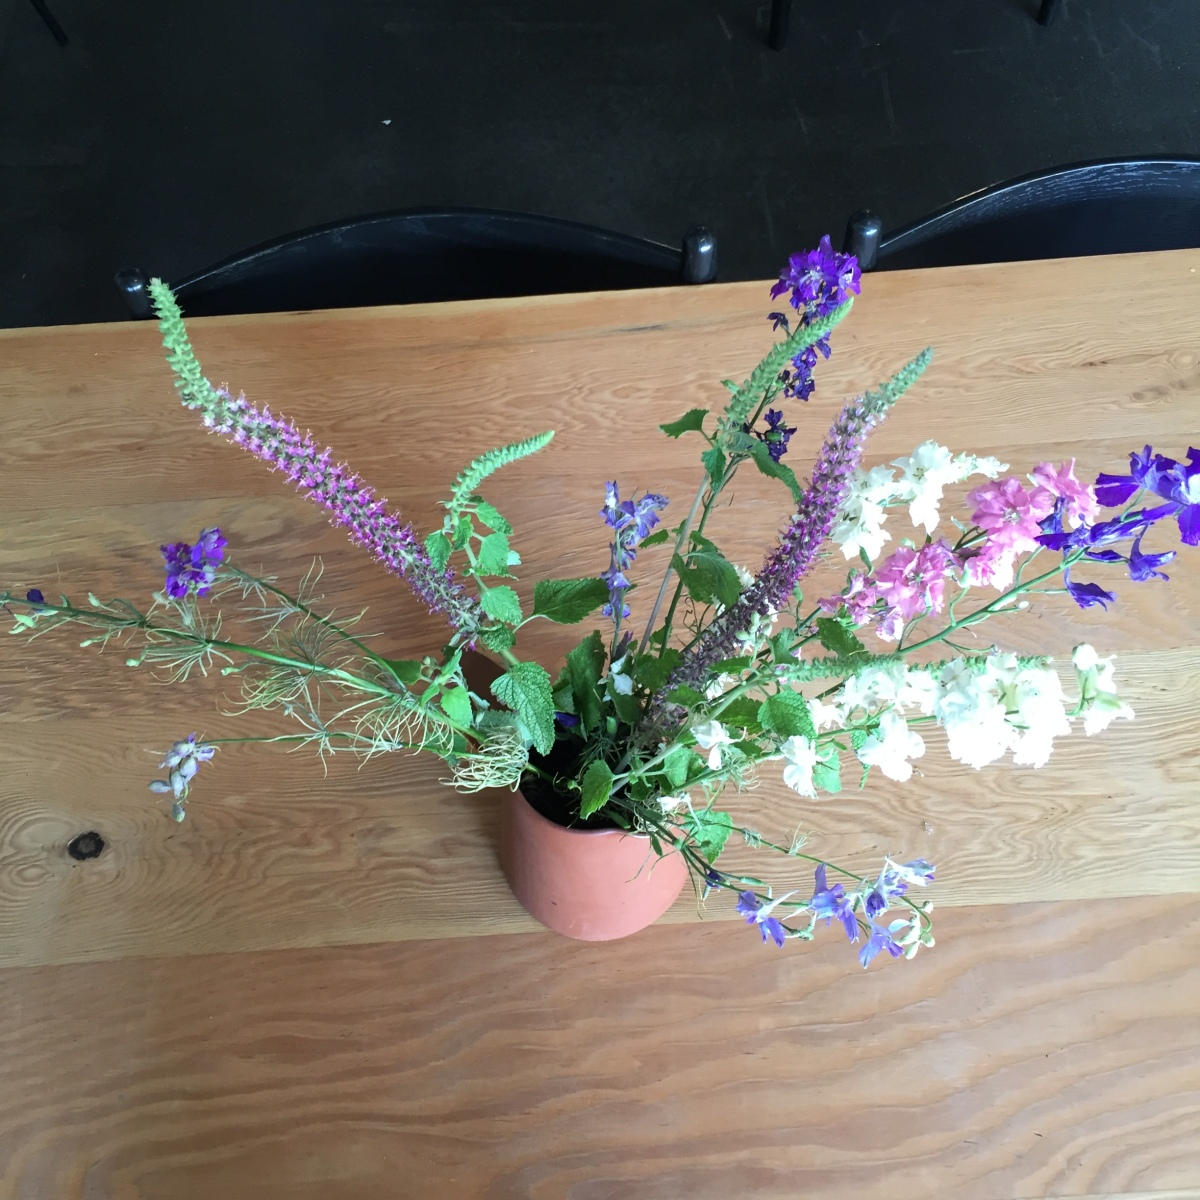 A photograph of a summer bouquet on a table at NOVI. There are white, pink, and blue flowers.